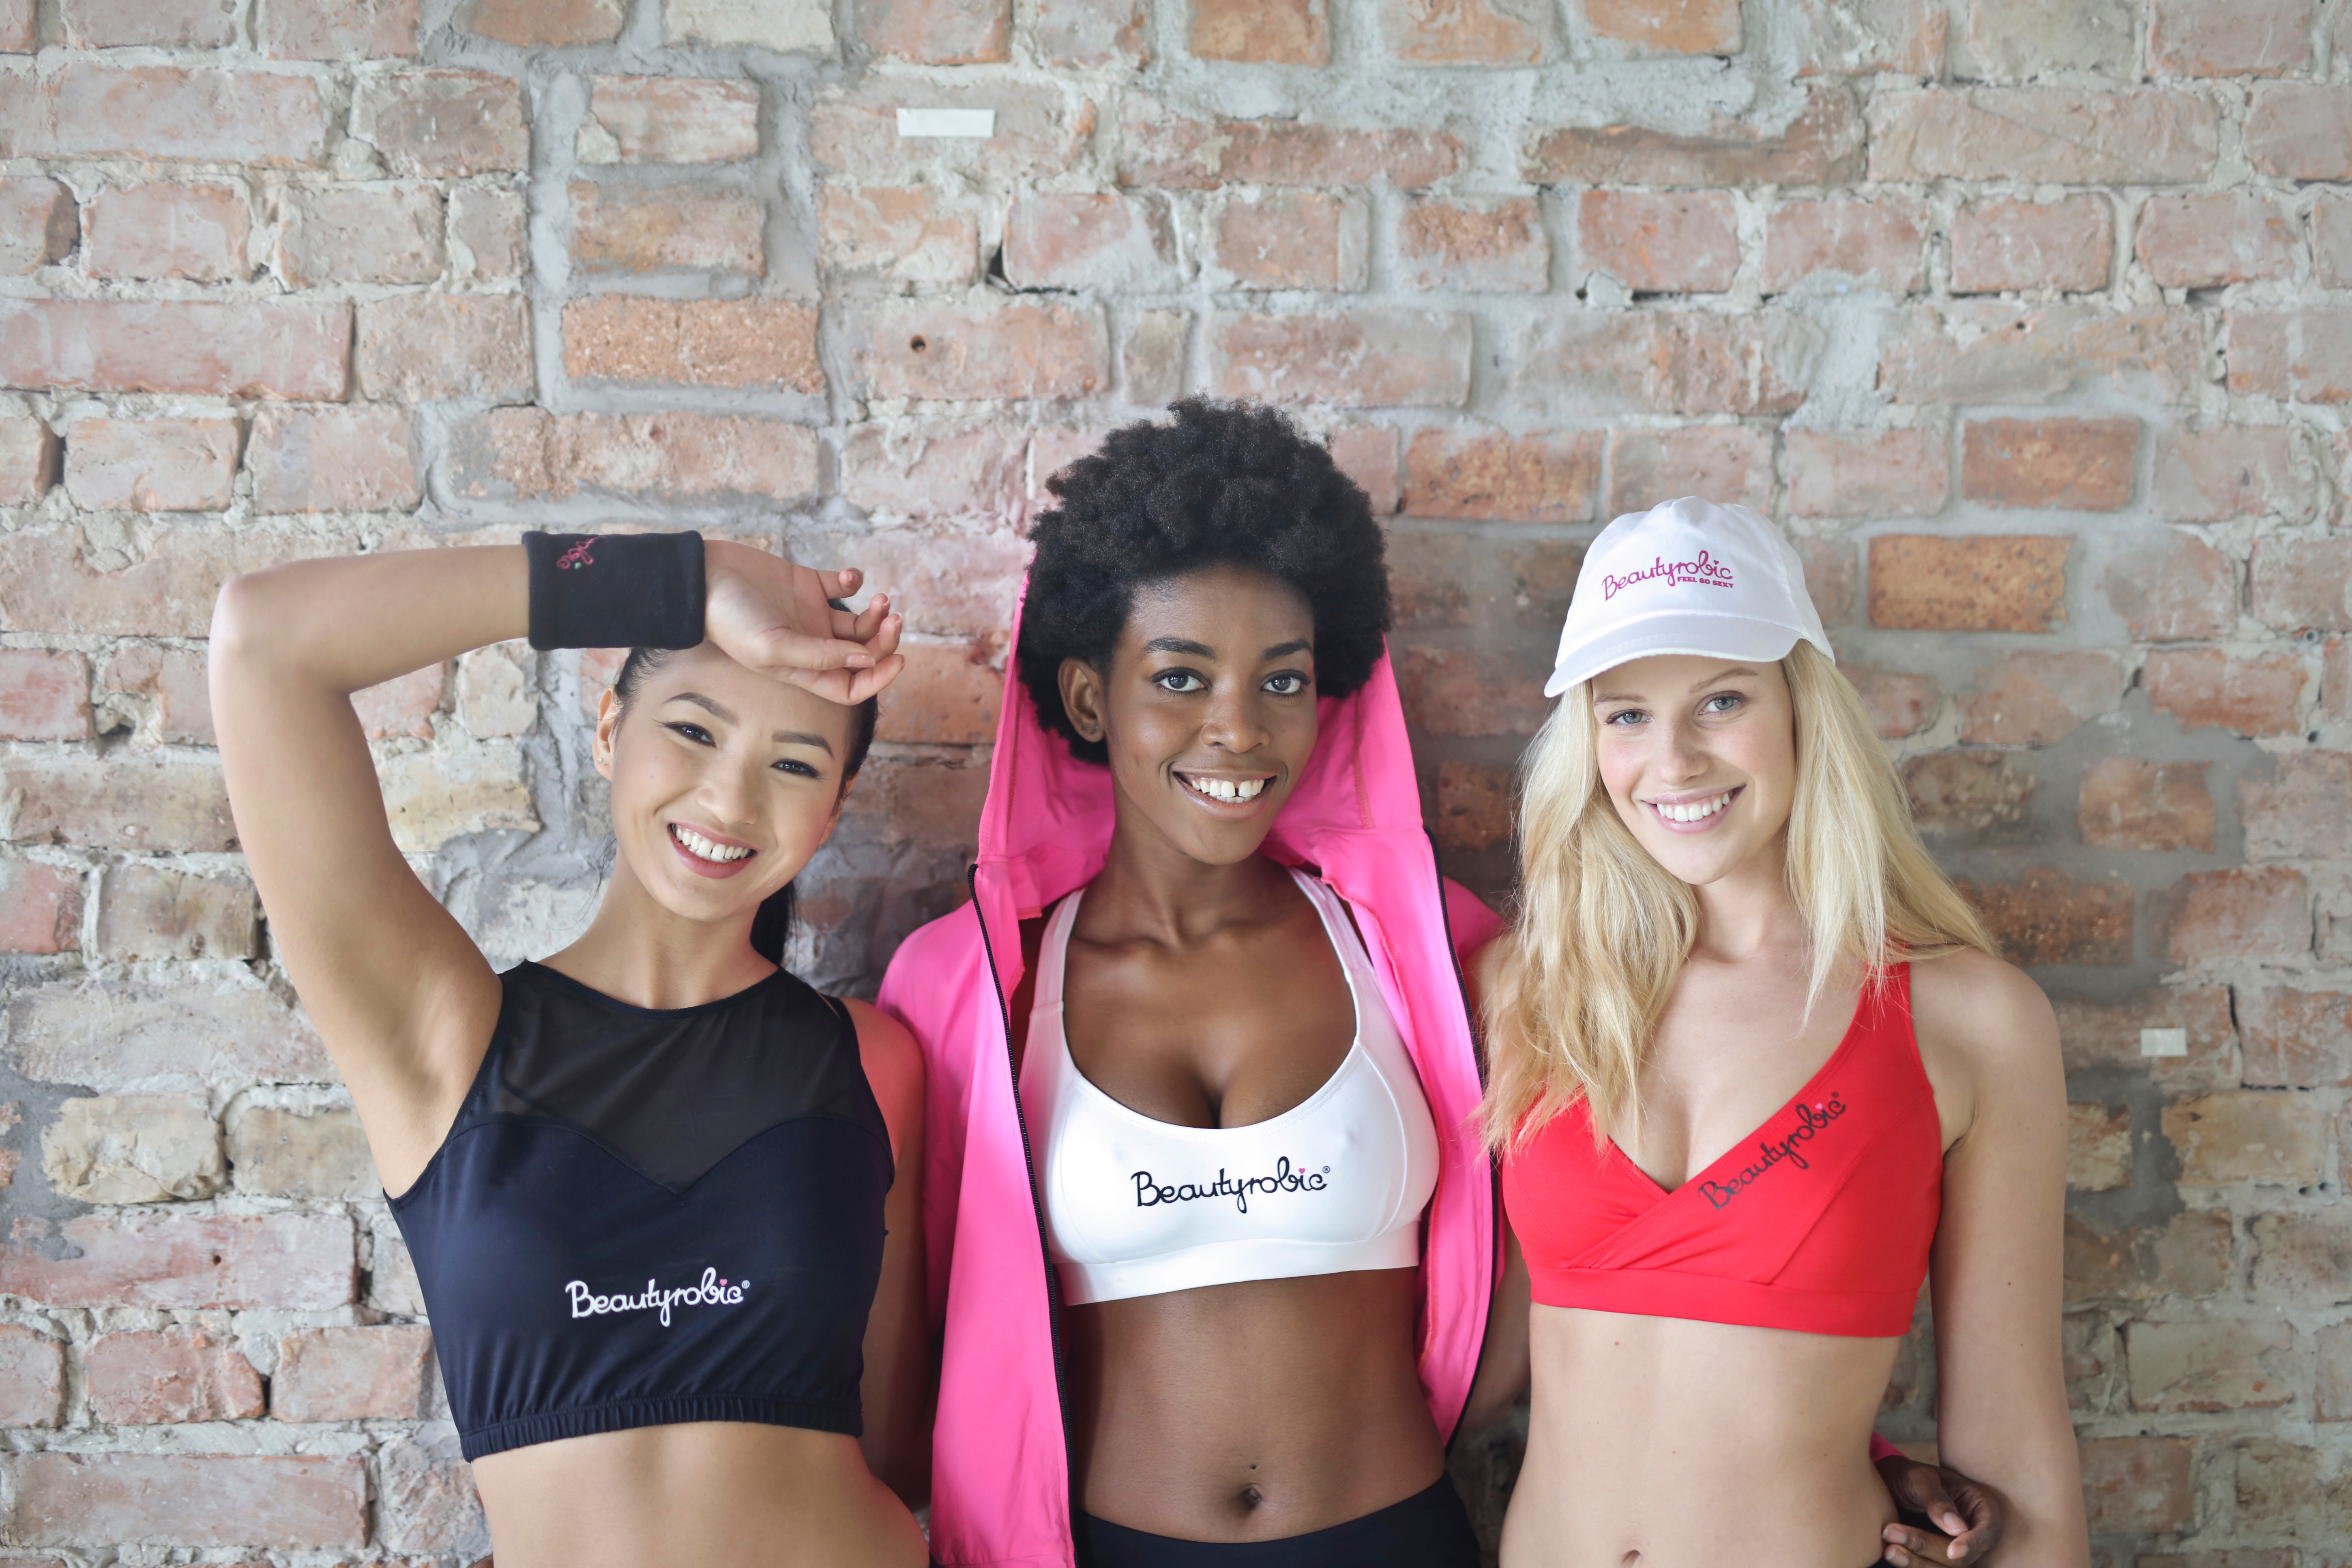 Three women wearing sport bra standing behind concrete wall photo